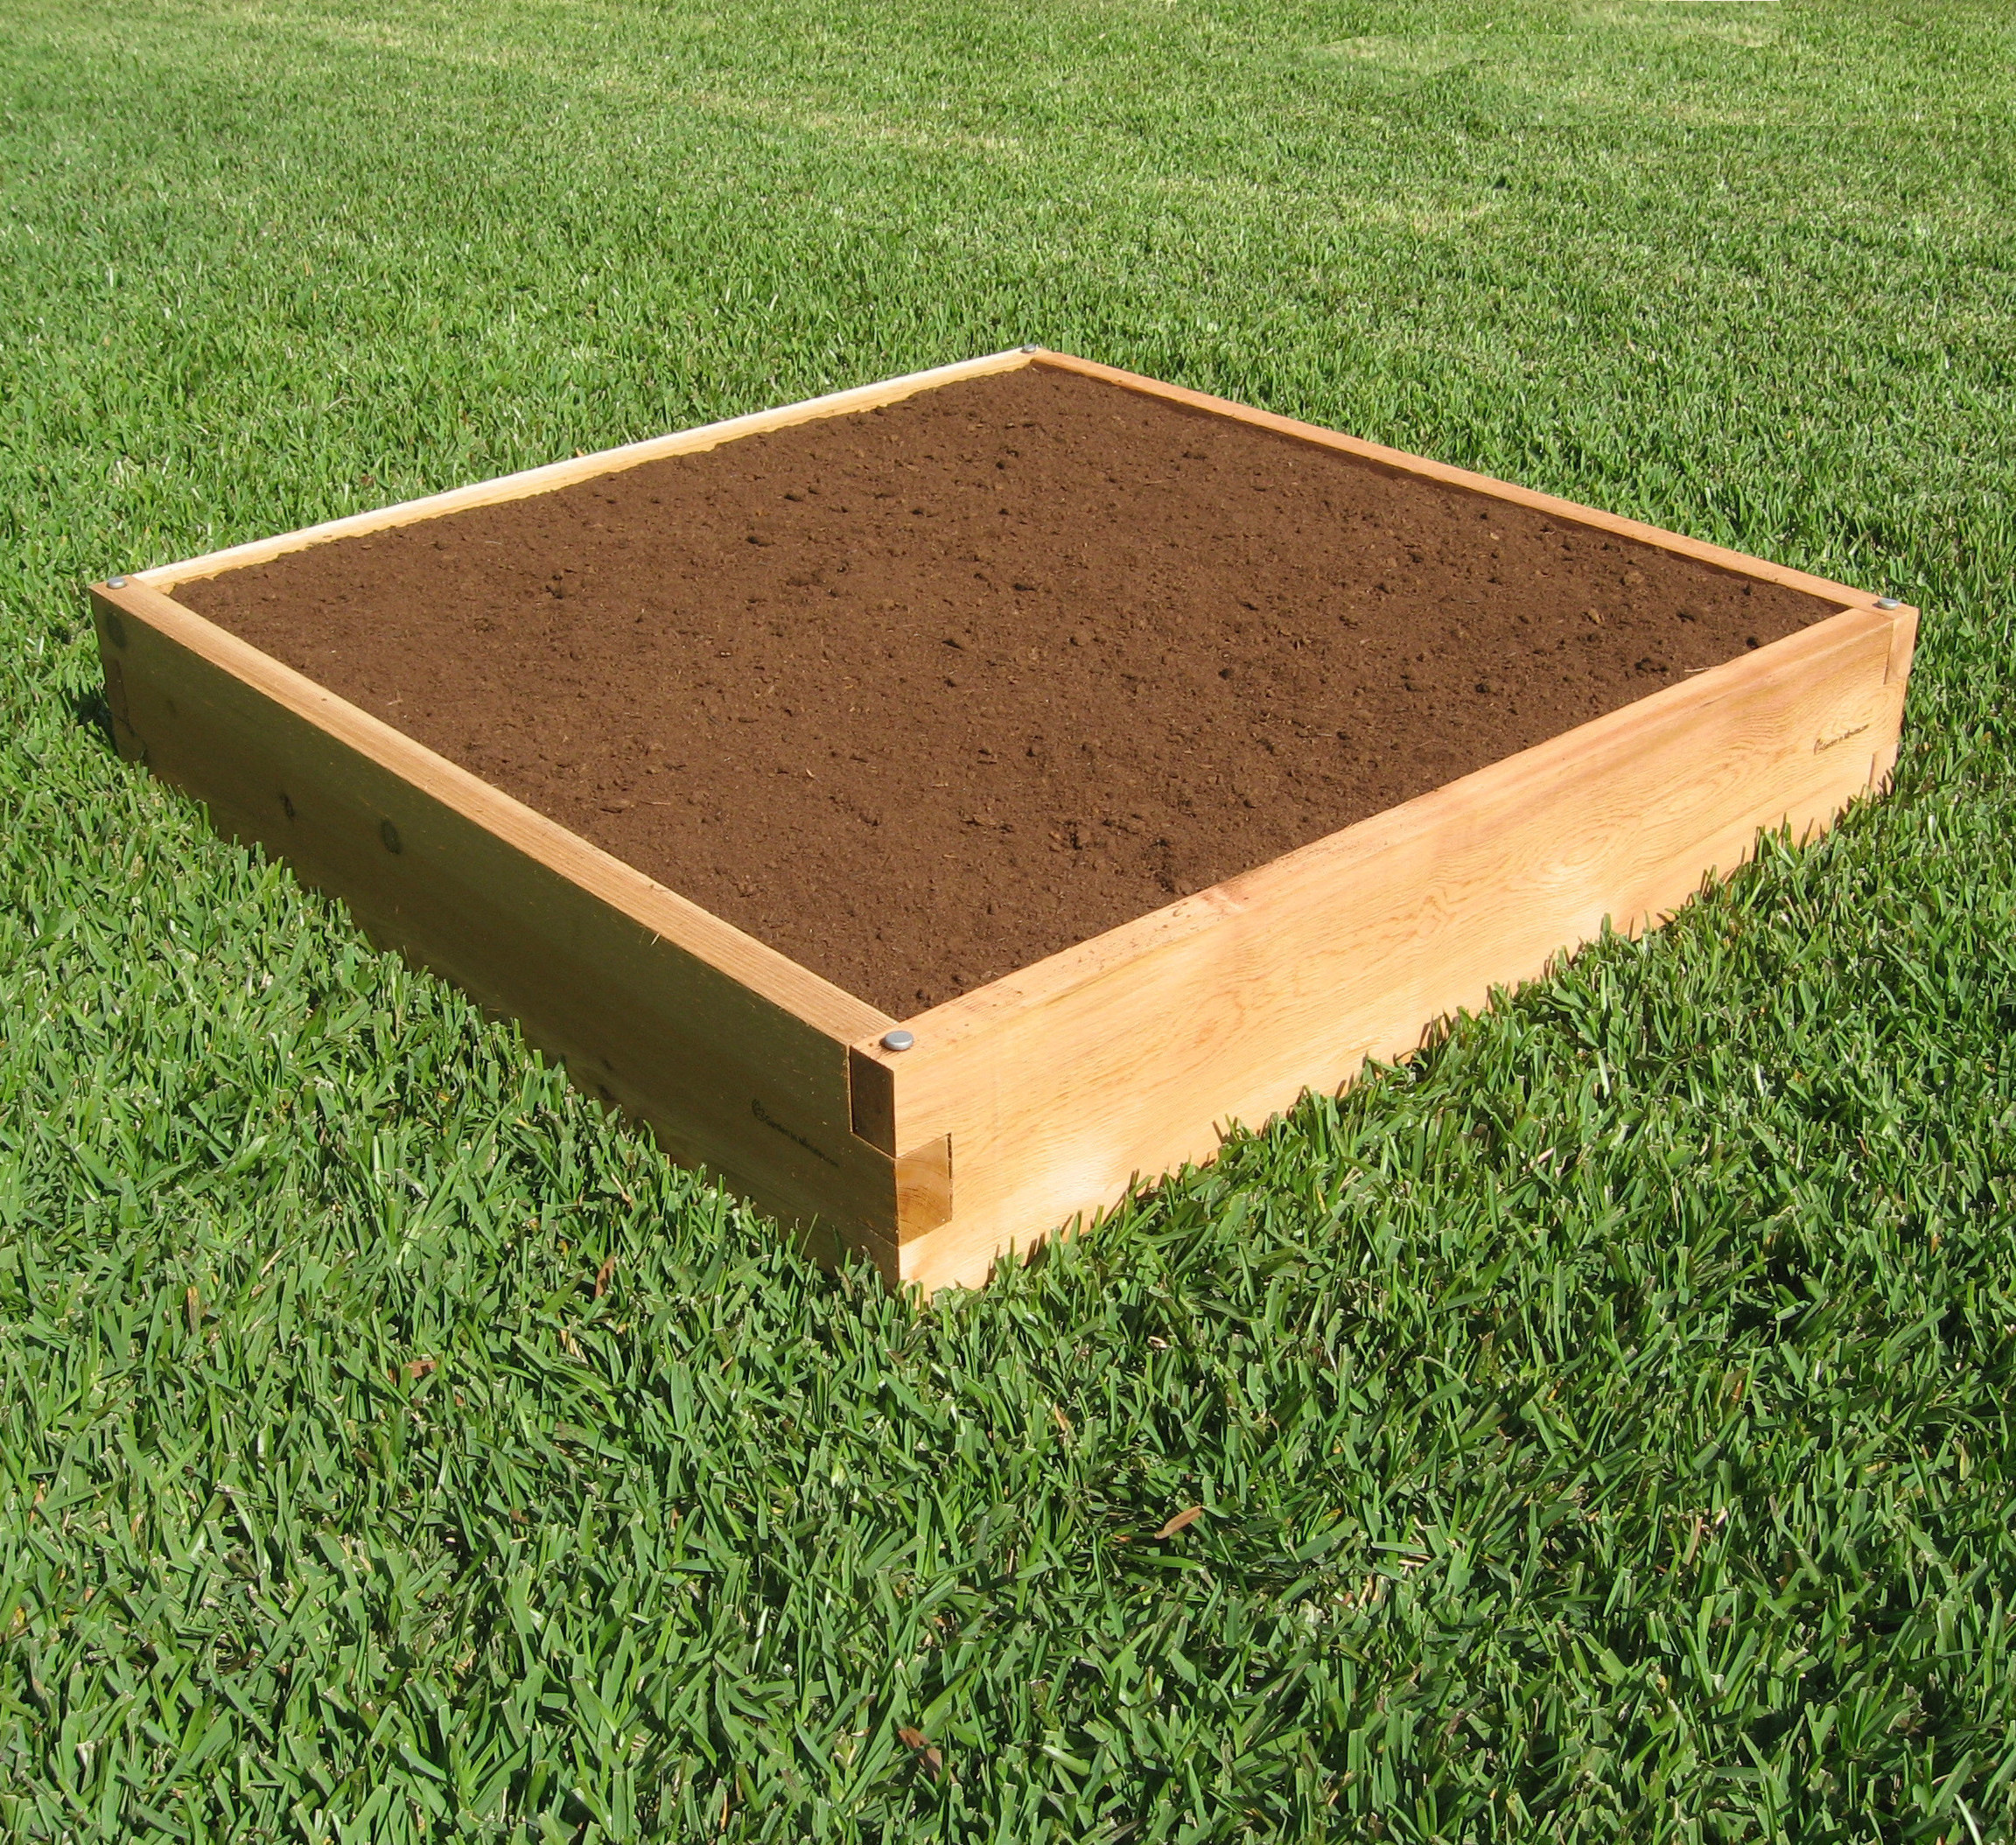 Small Garden Bed & Planting 4X4 20002